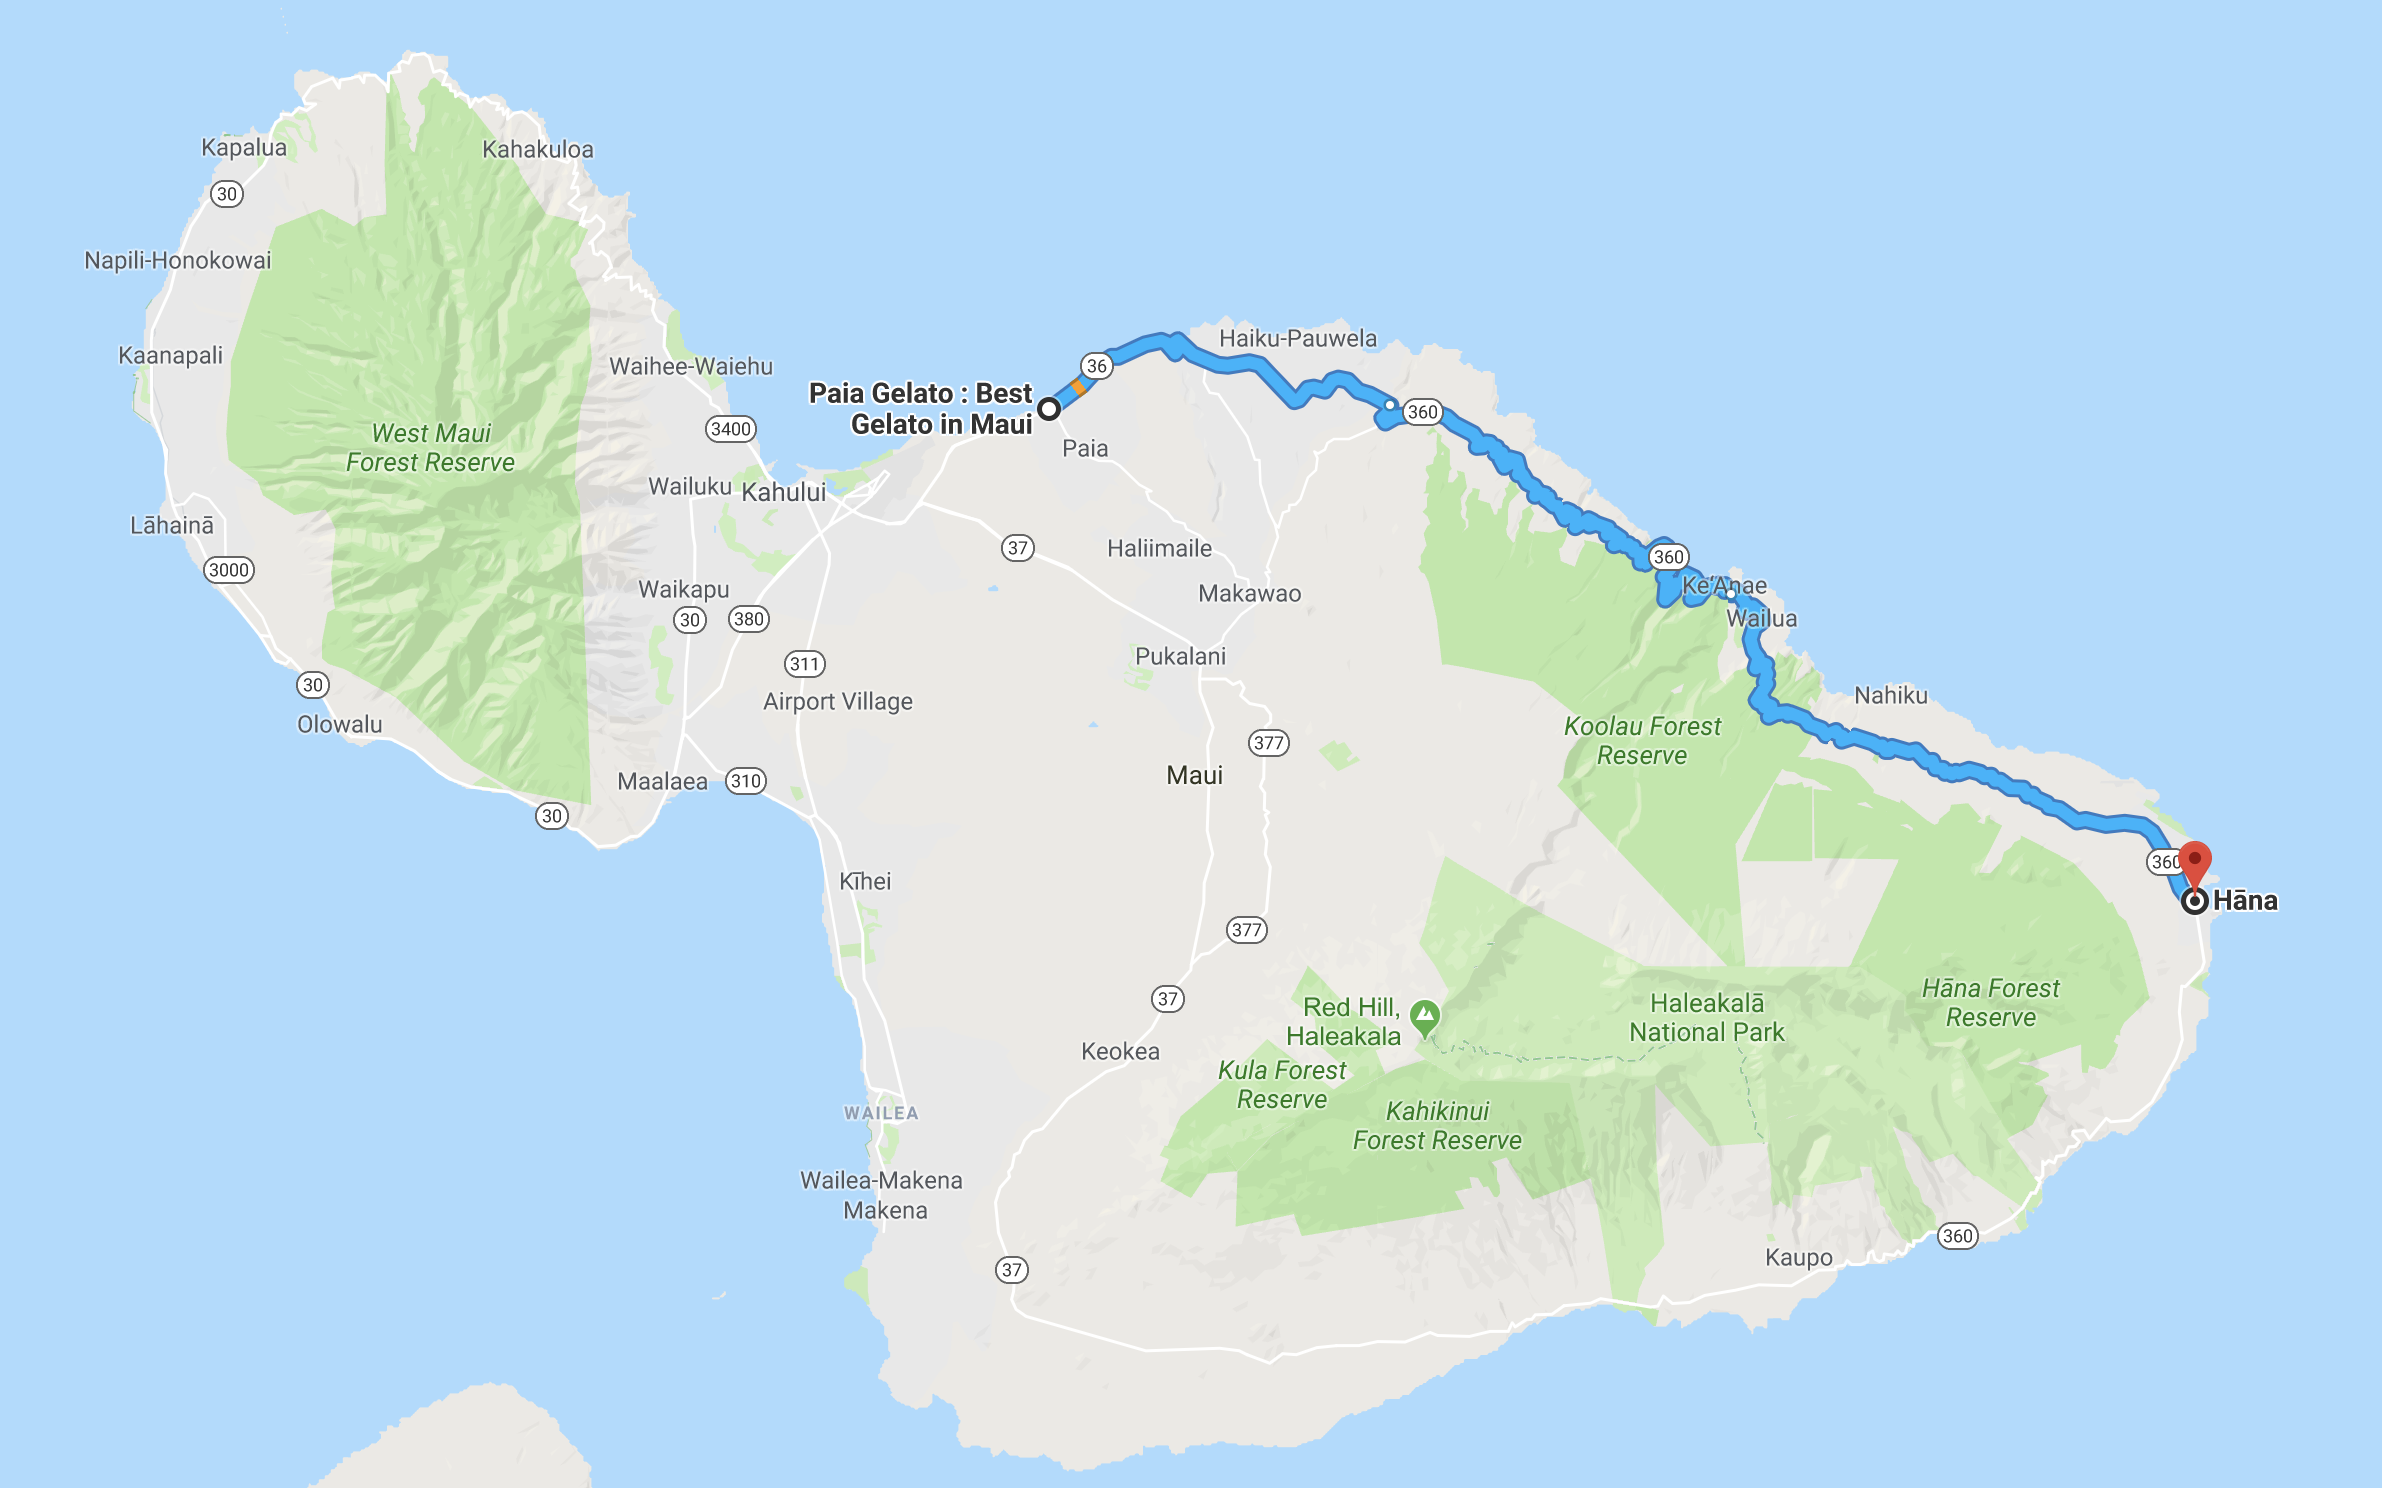 Road to hana Route Google Maps